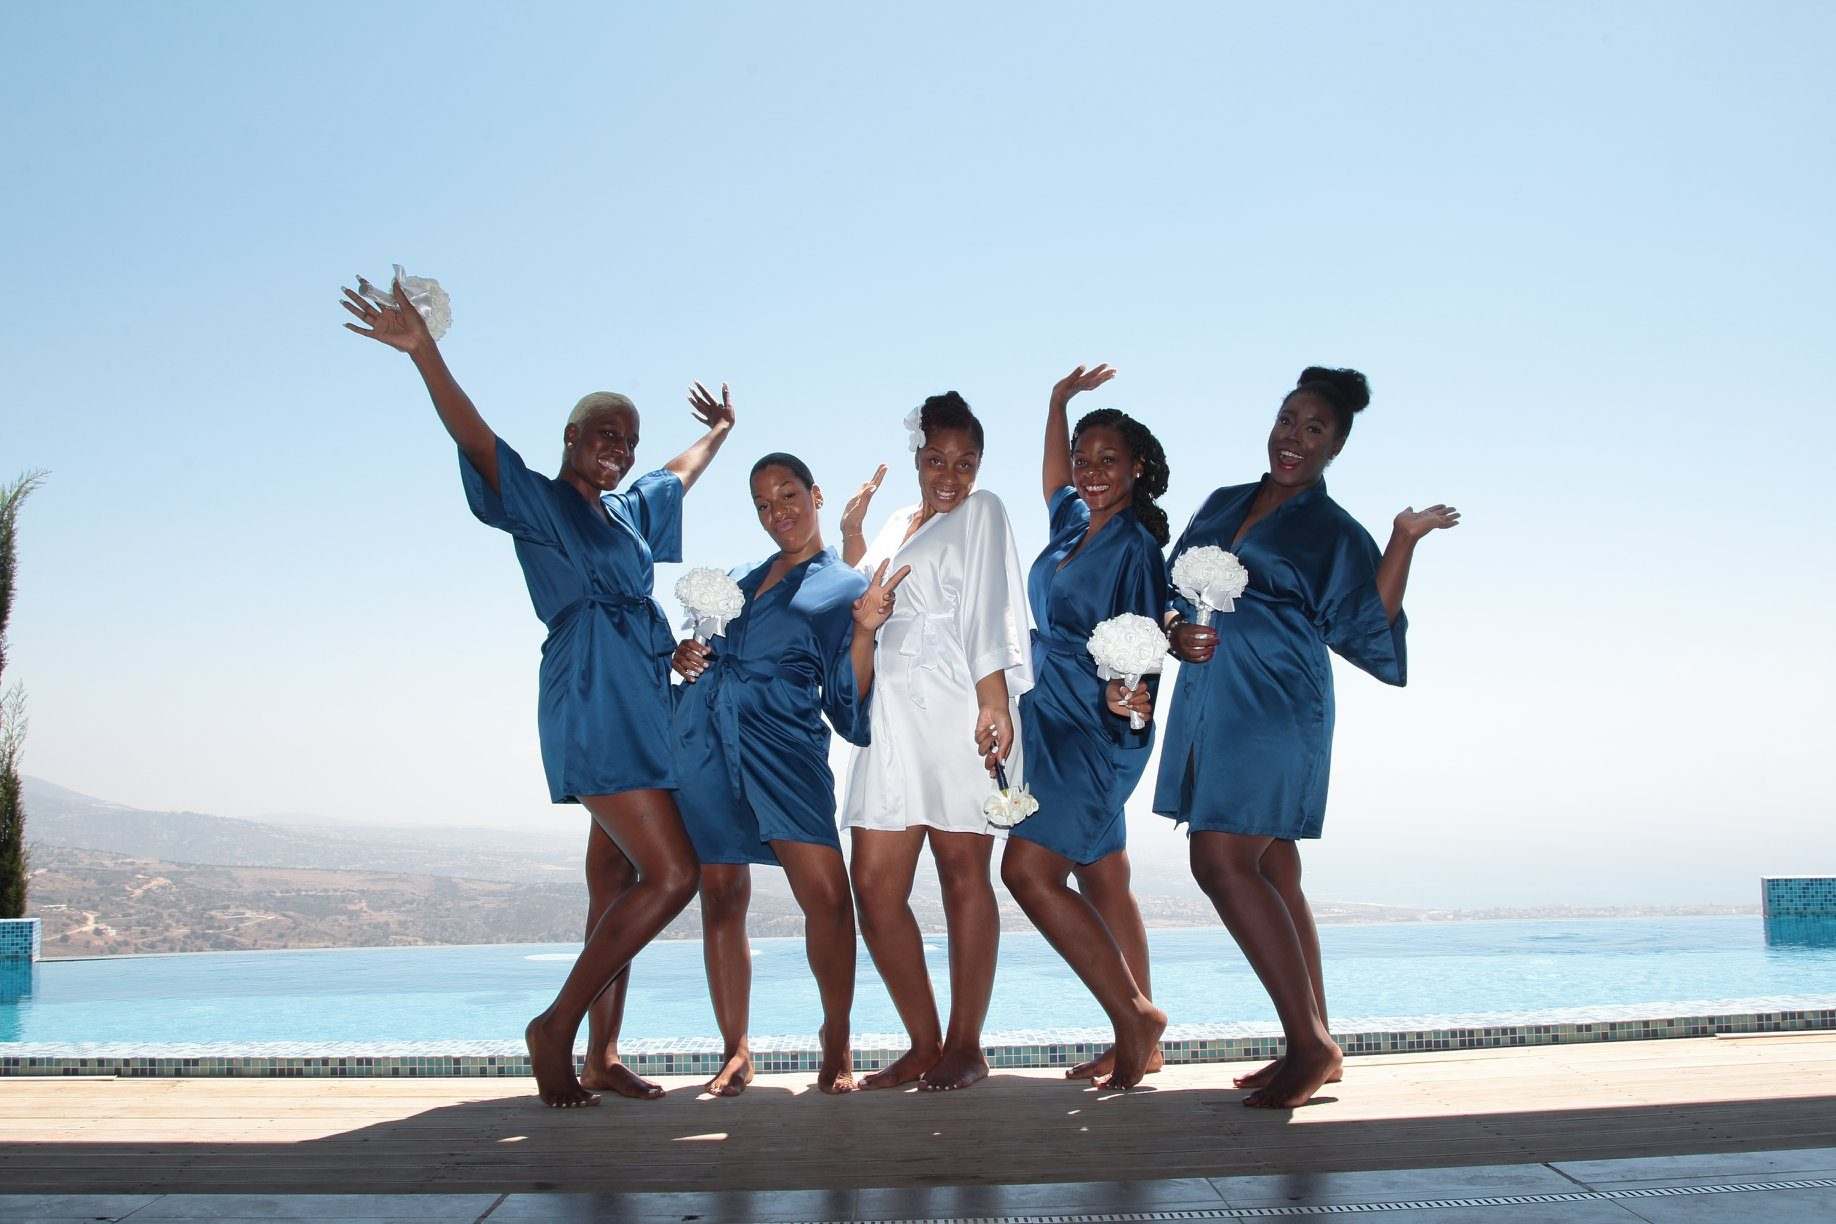 brides-maid oceania wedding villa weddings 2020 paphos holidays